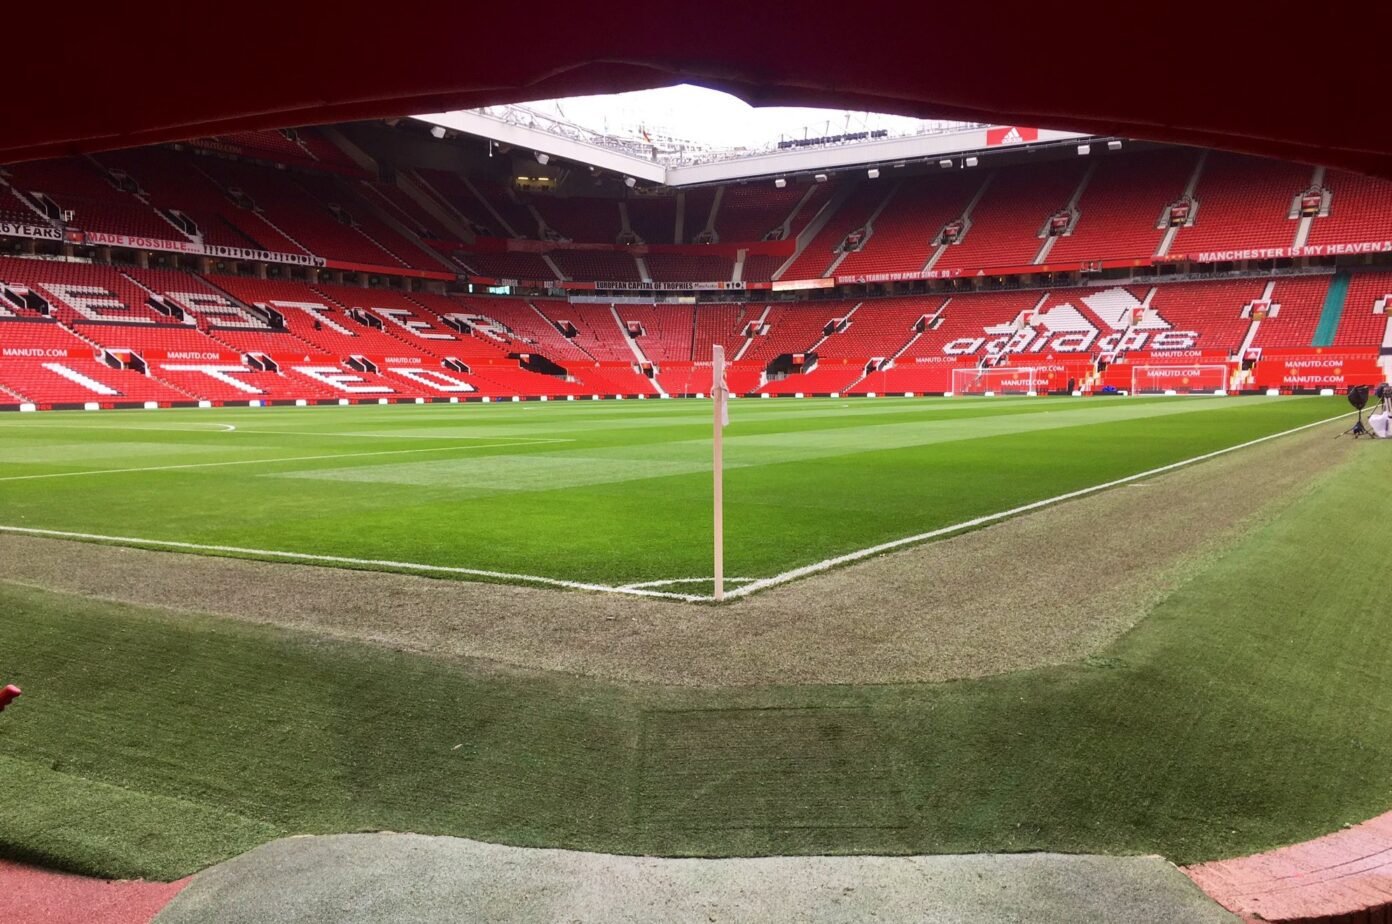 Manchester United vs Liverpool - Stream Links: Watch Live Streaming